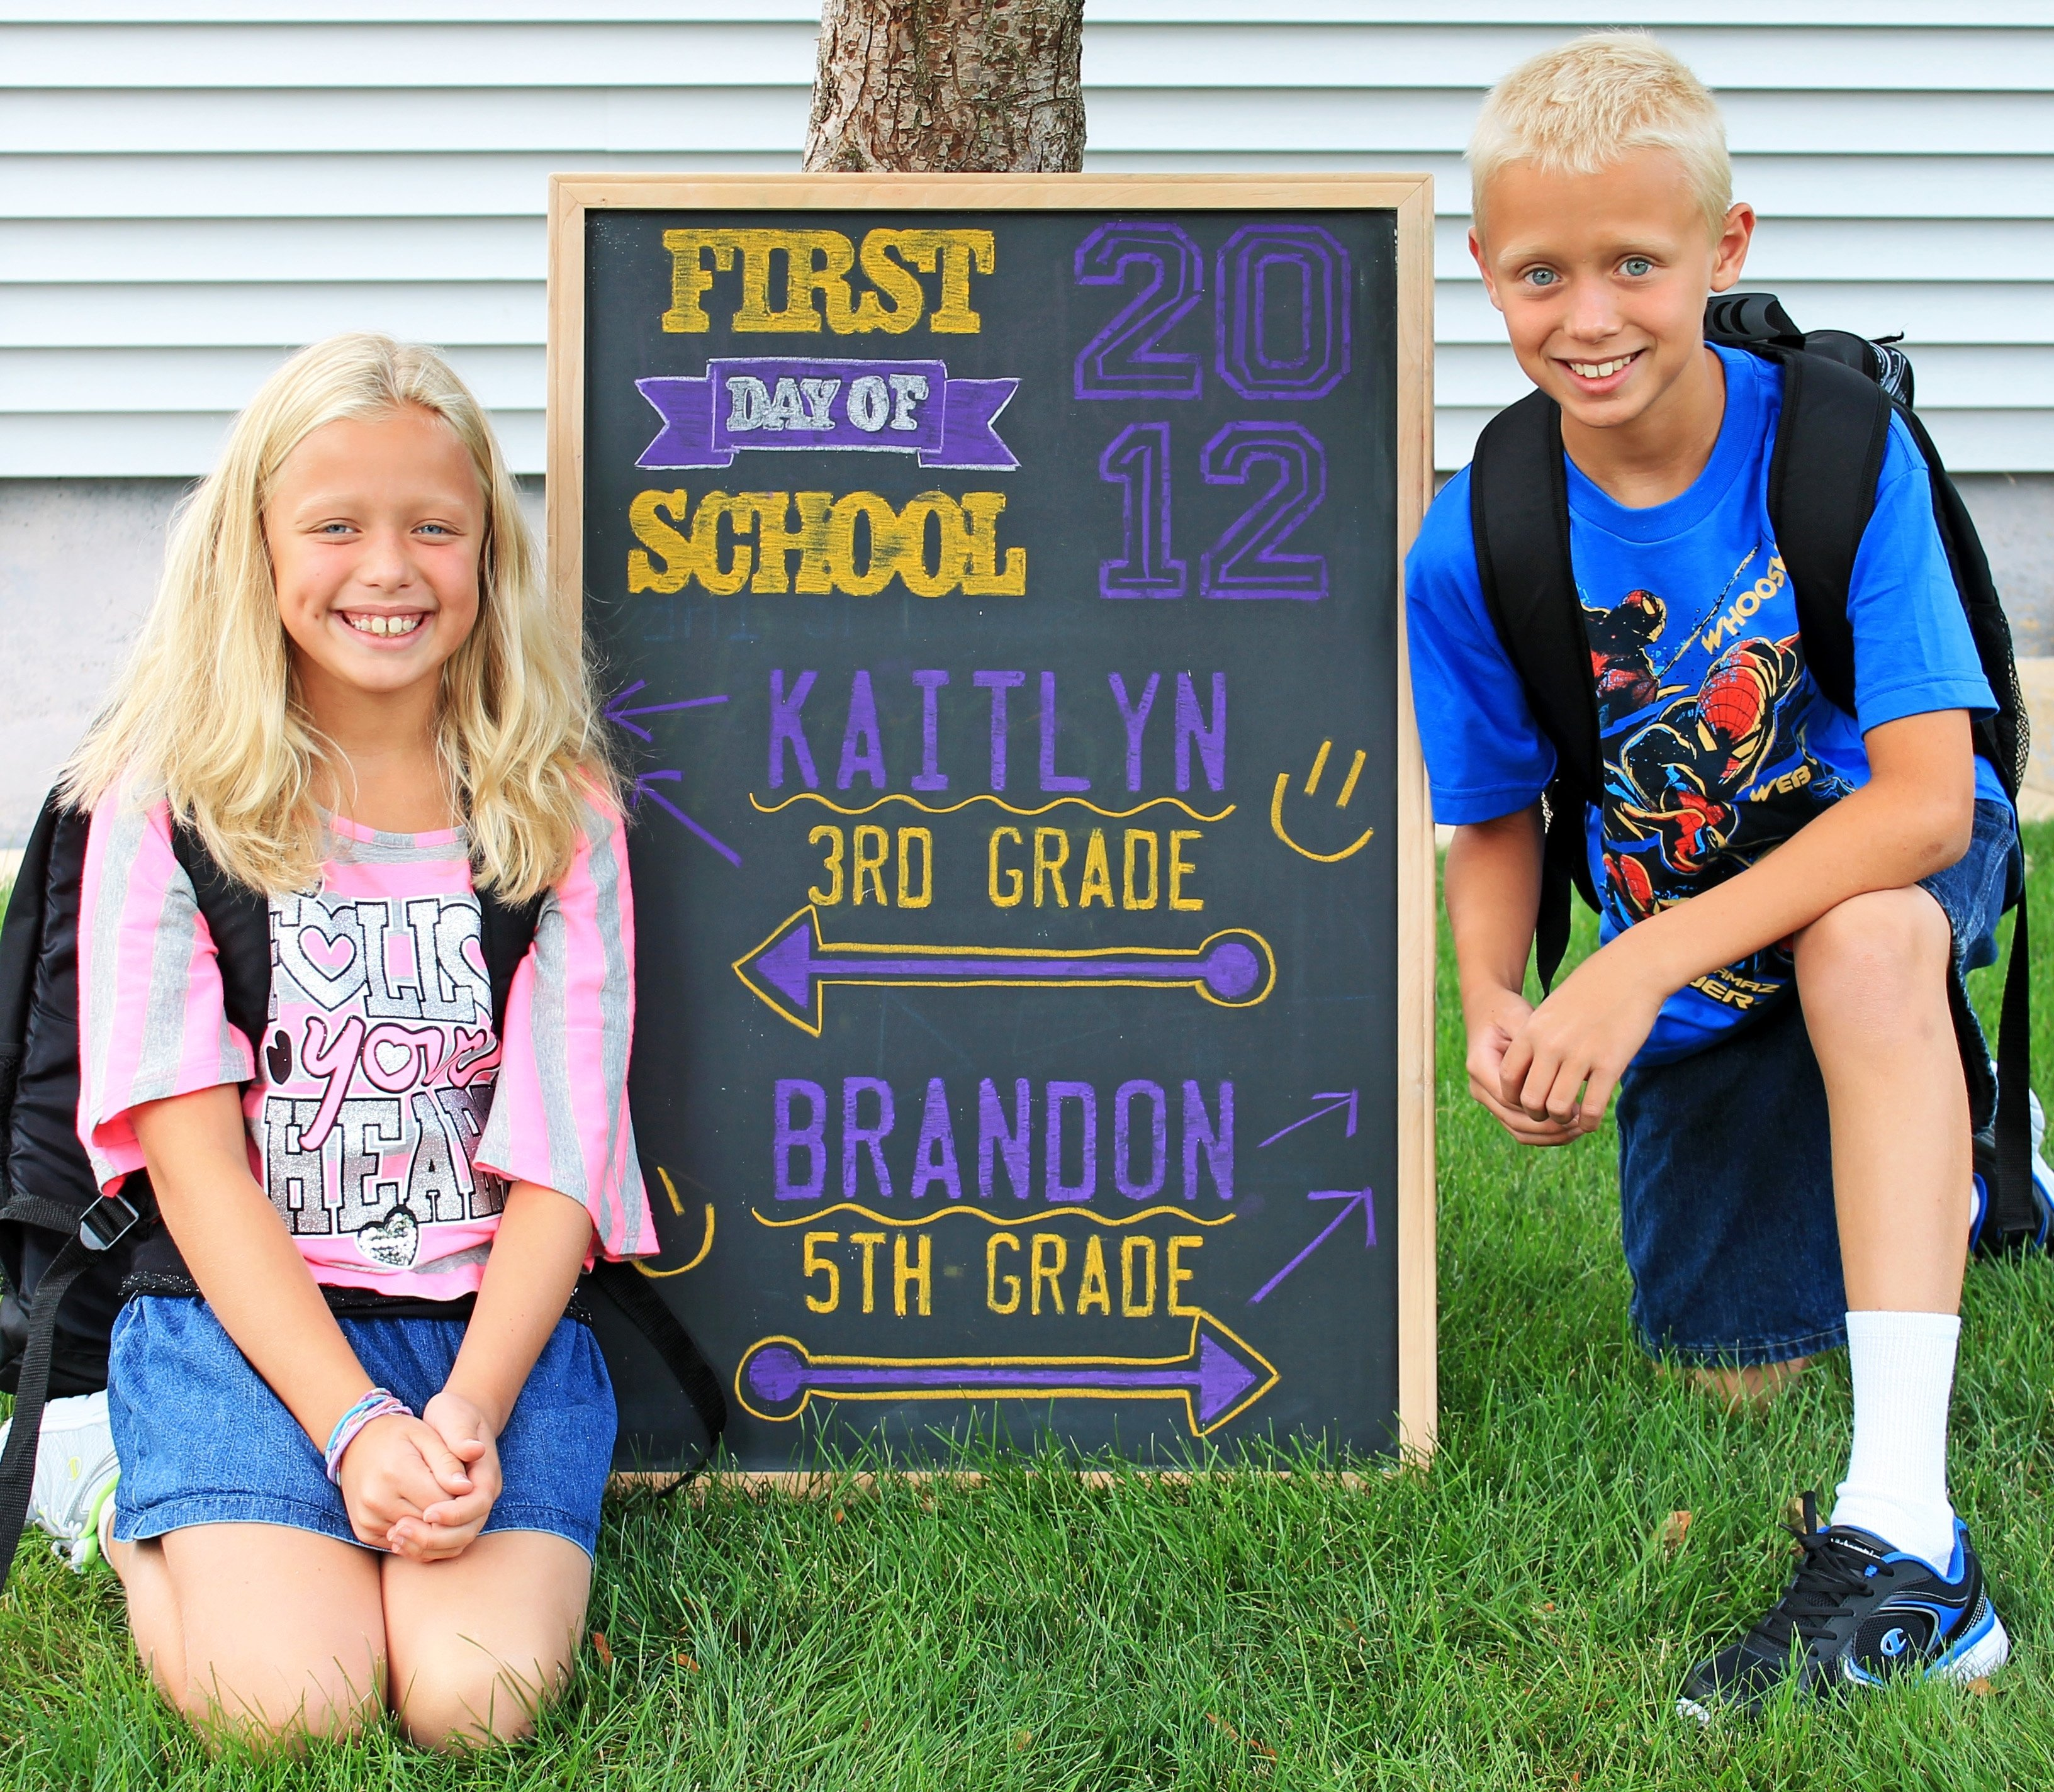 10 Nice 1St Day Of School Ideas printable first day of school signs and bonus photo ideas 2020